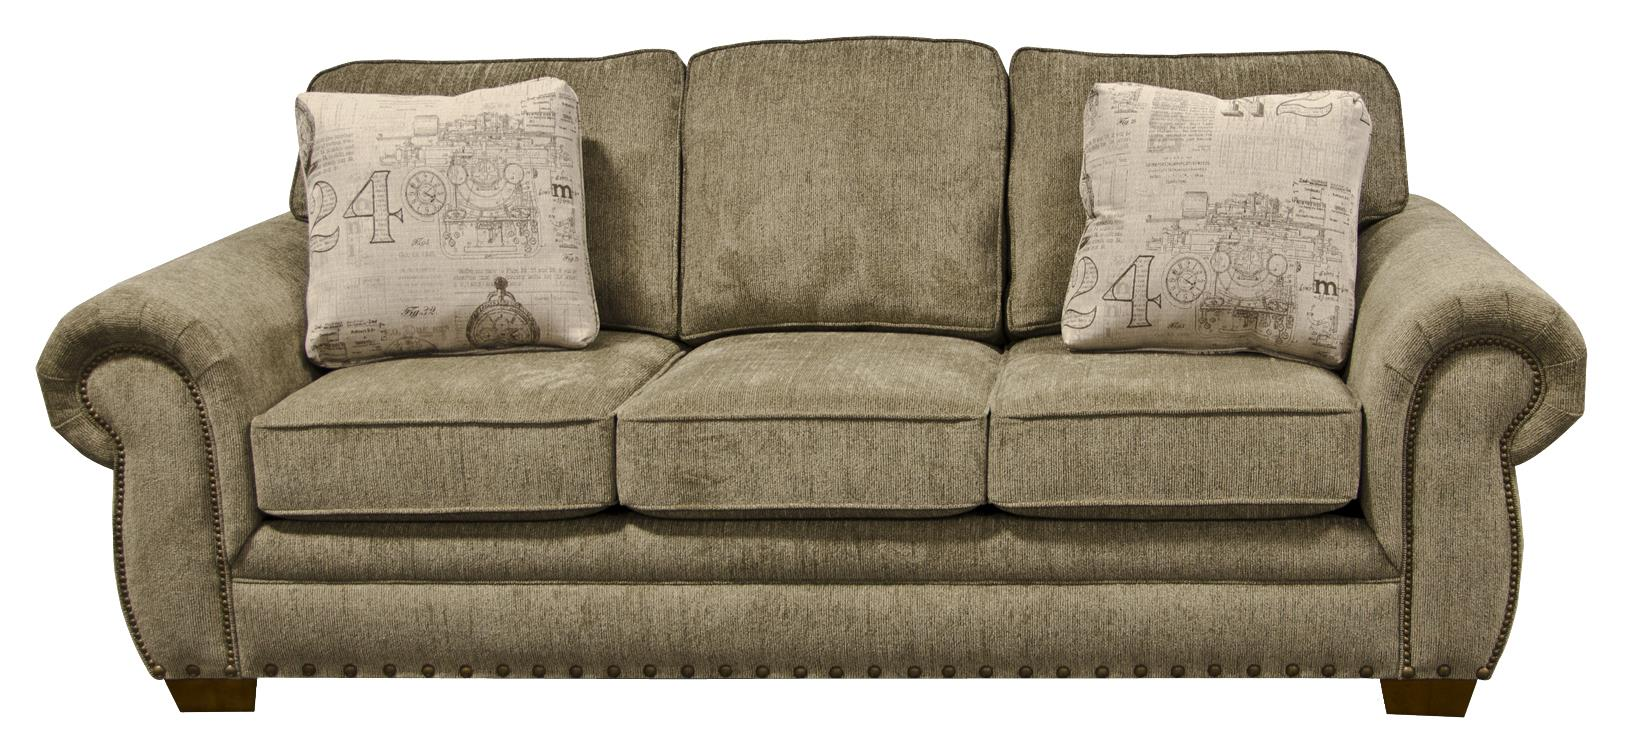 England Walters Sofa with Nailhead Trim - Item Number: 6635N-6844